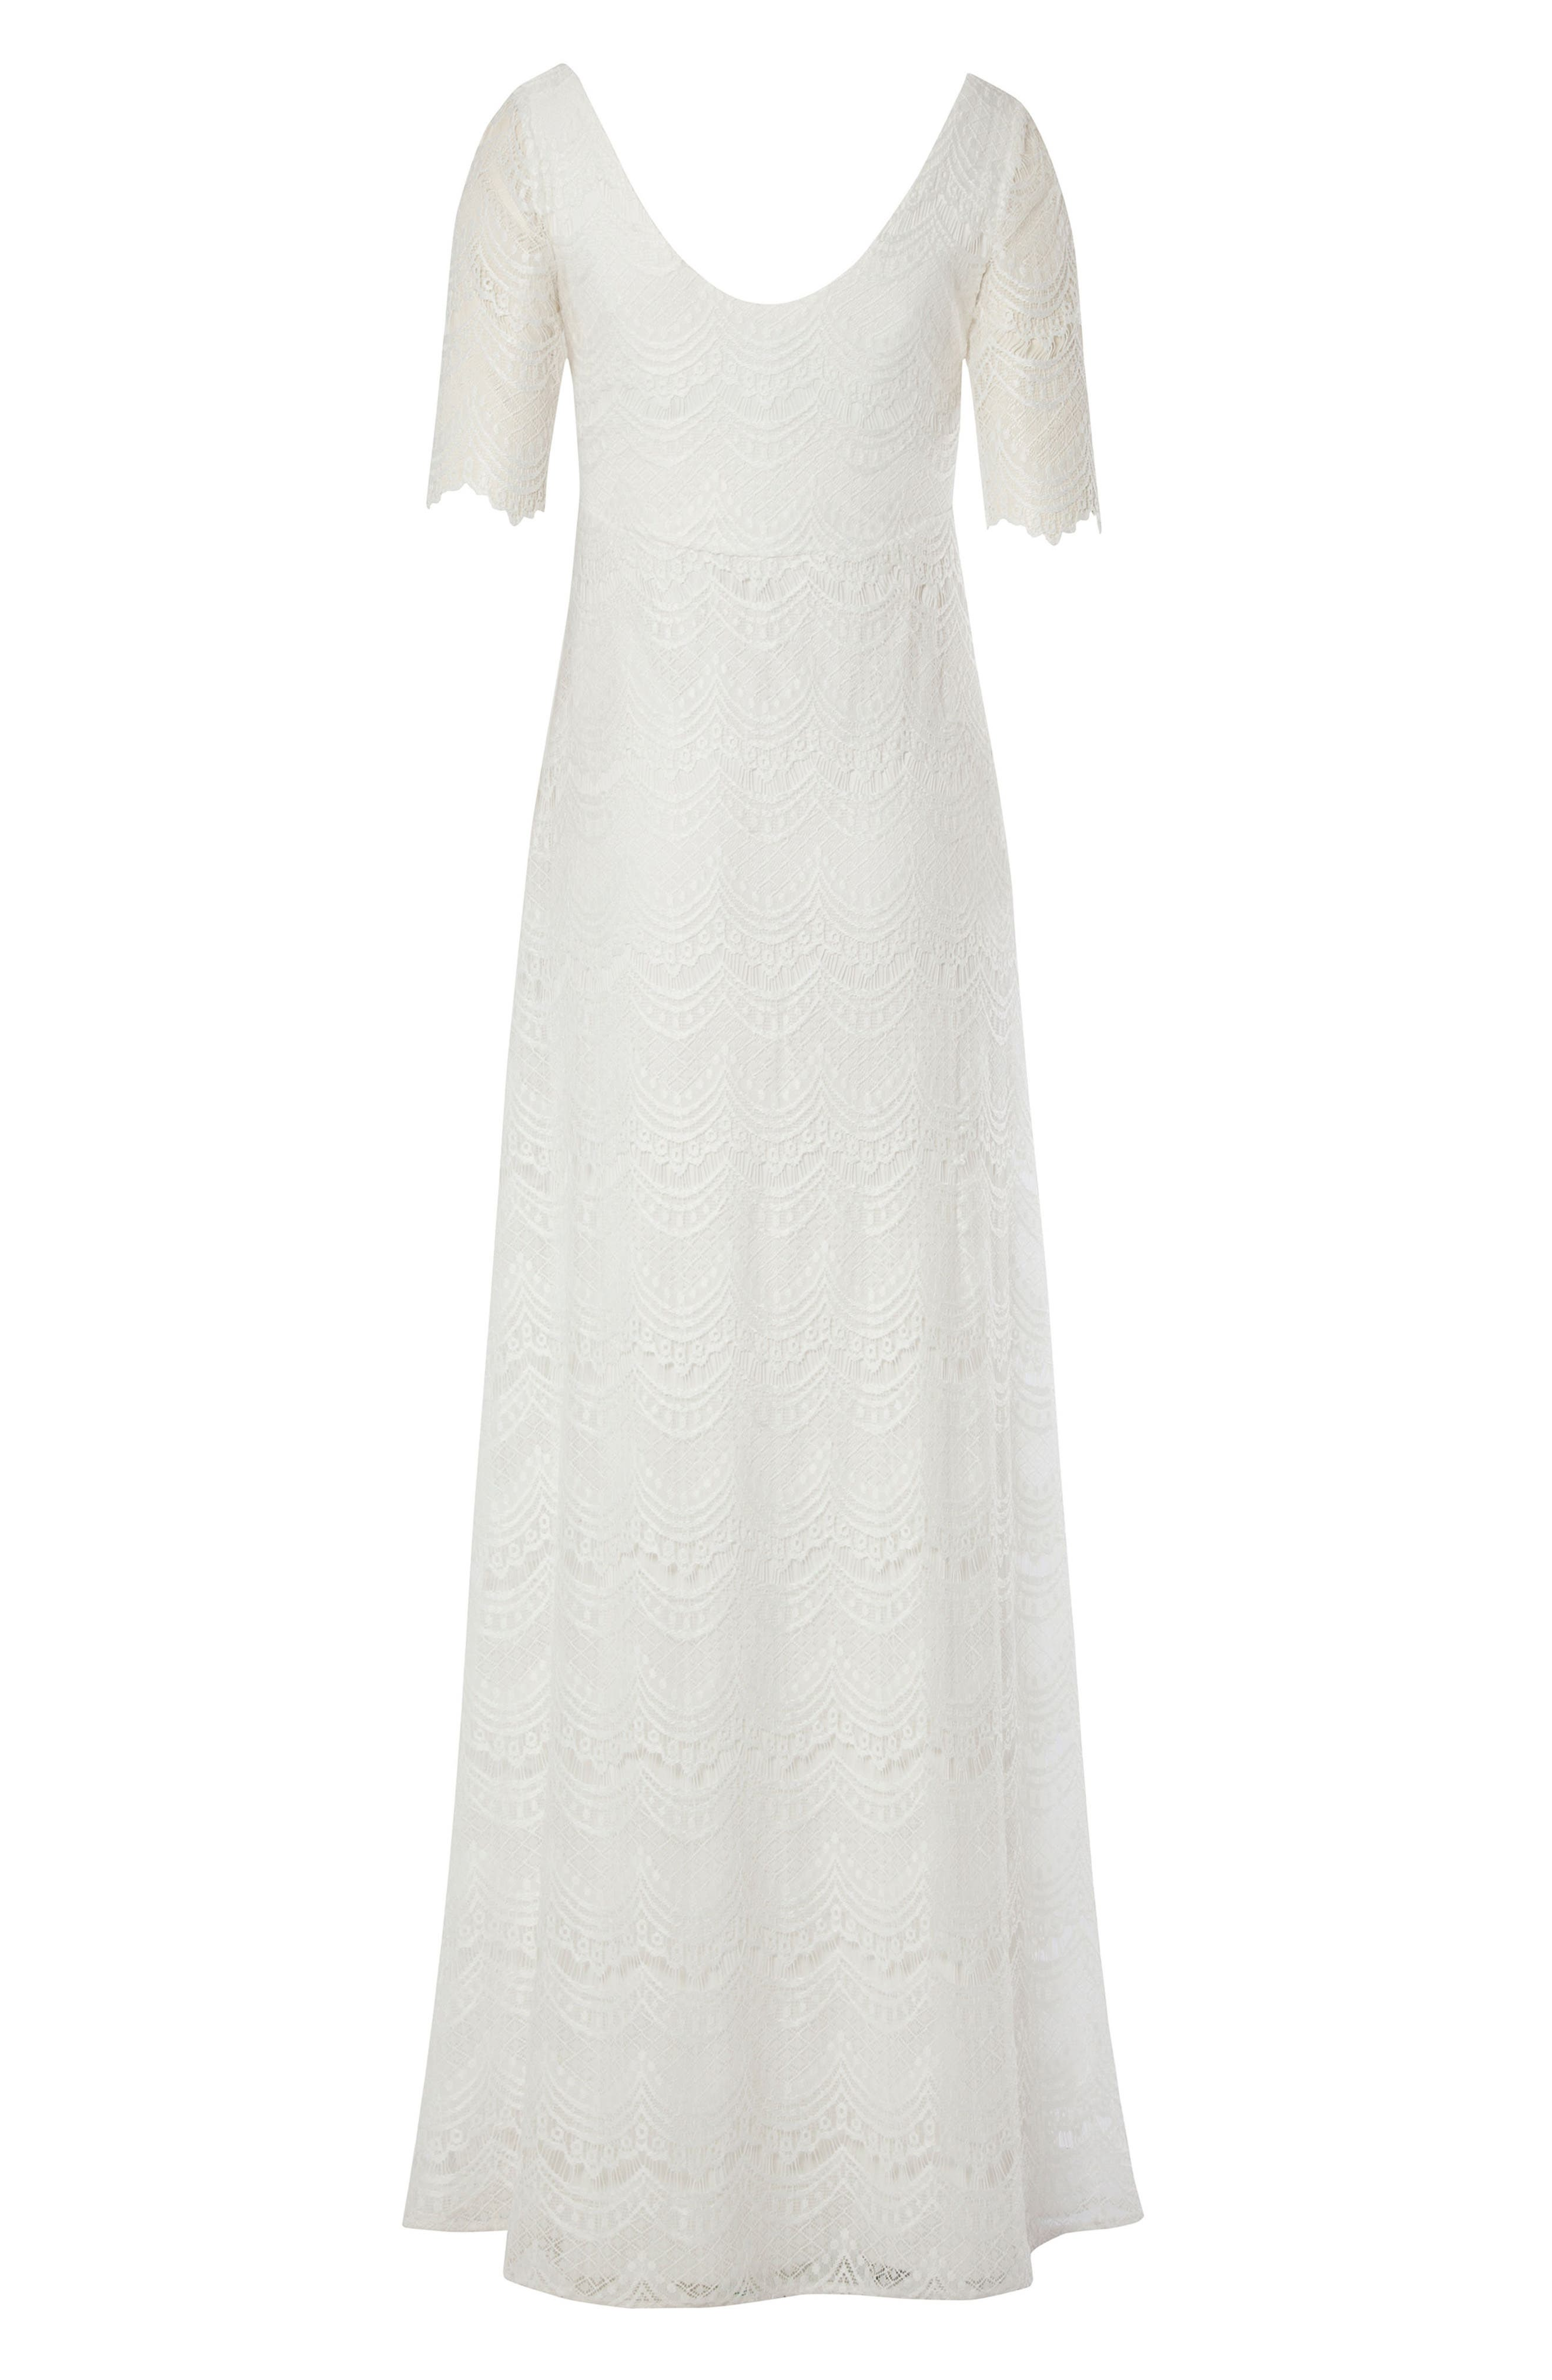 Verona Maternity Gown,                             Alternate thumbnail 3, color,                             BRIGHT IVORY